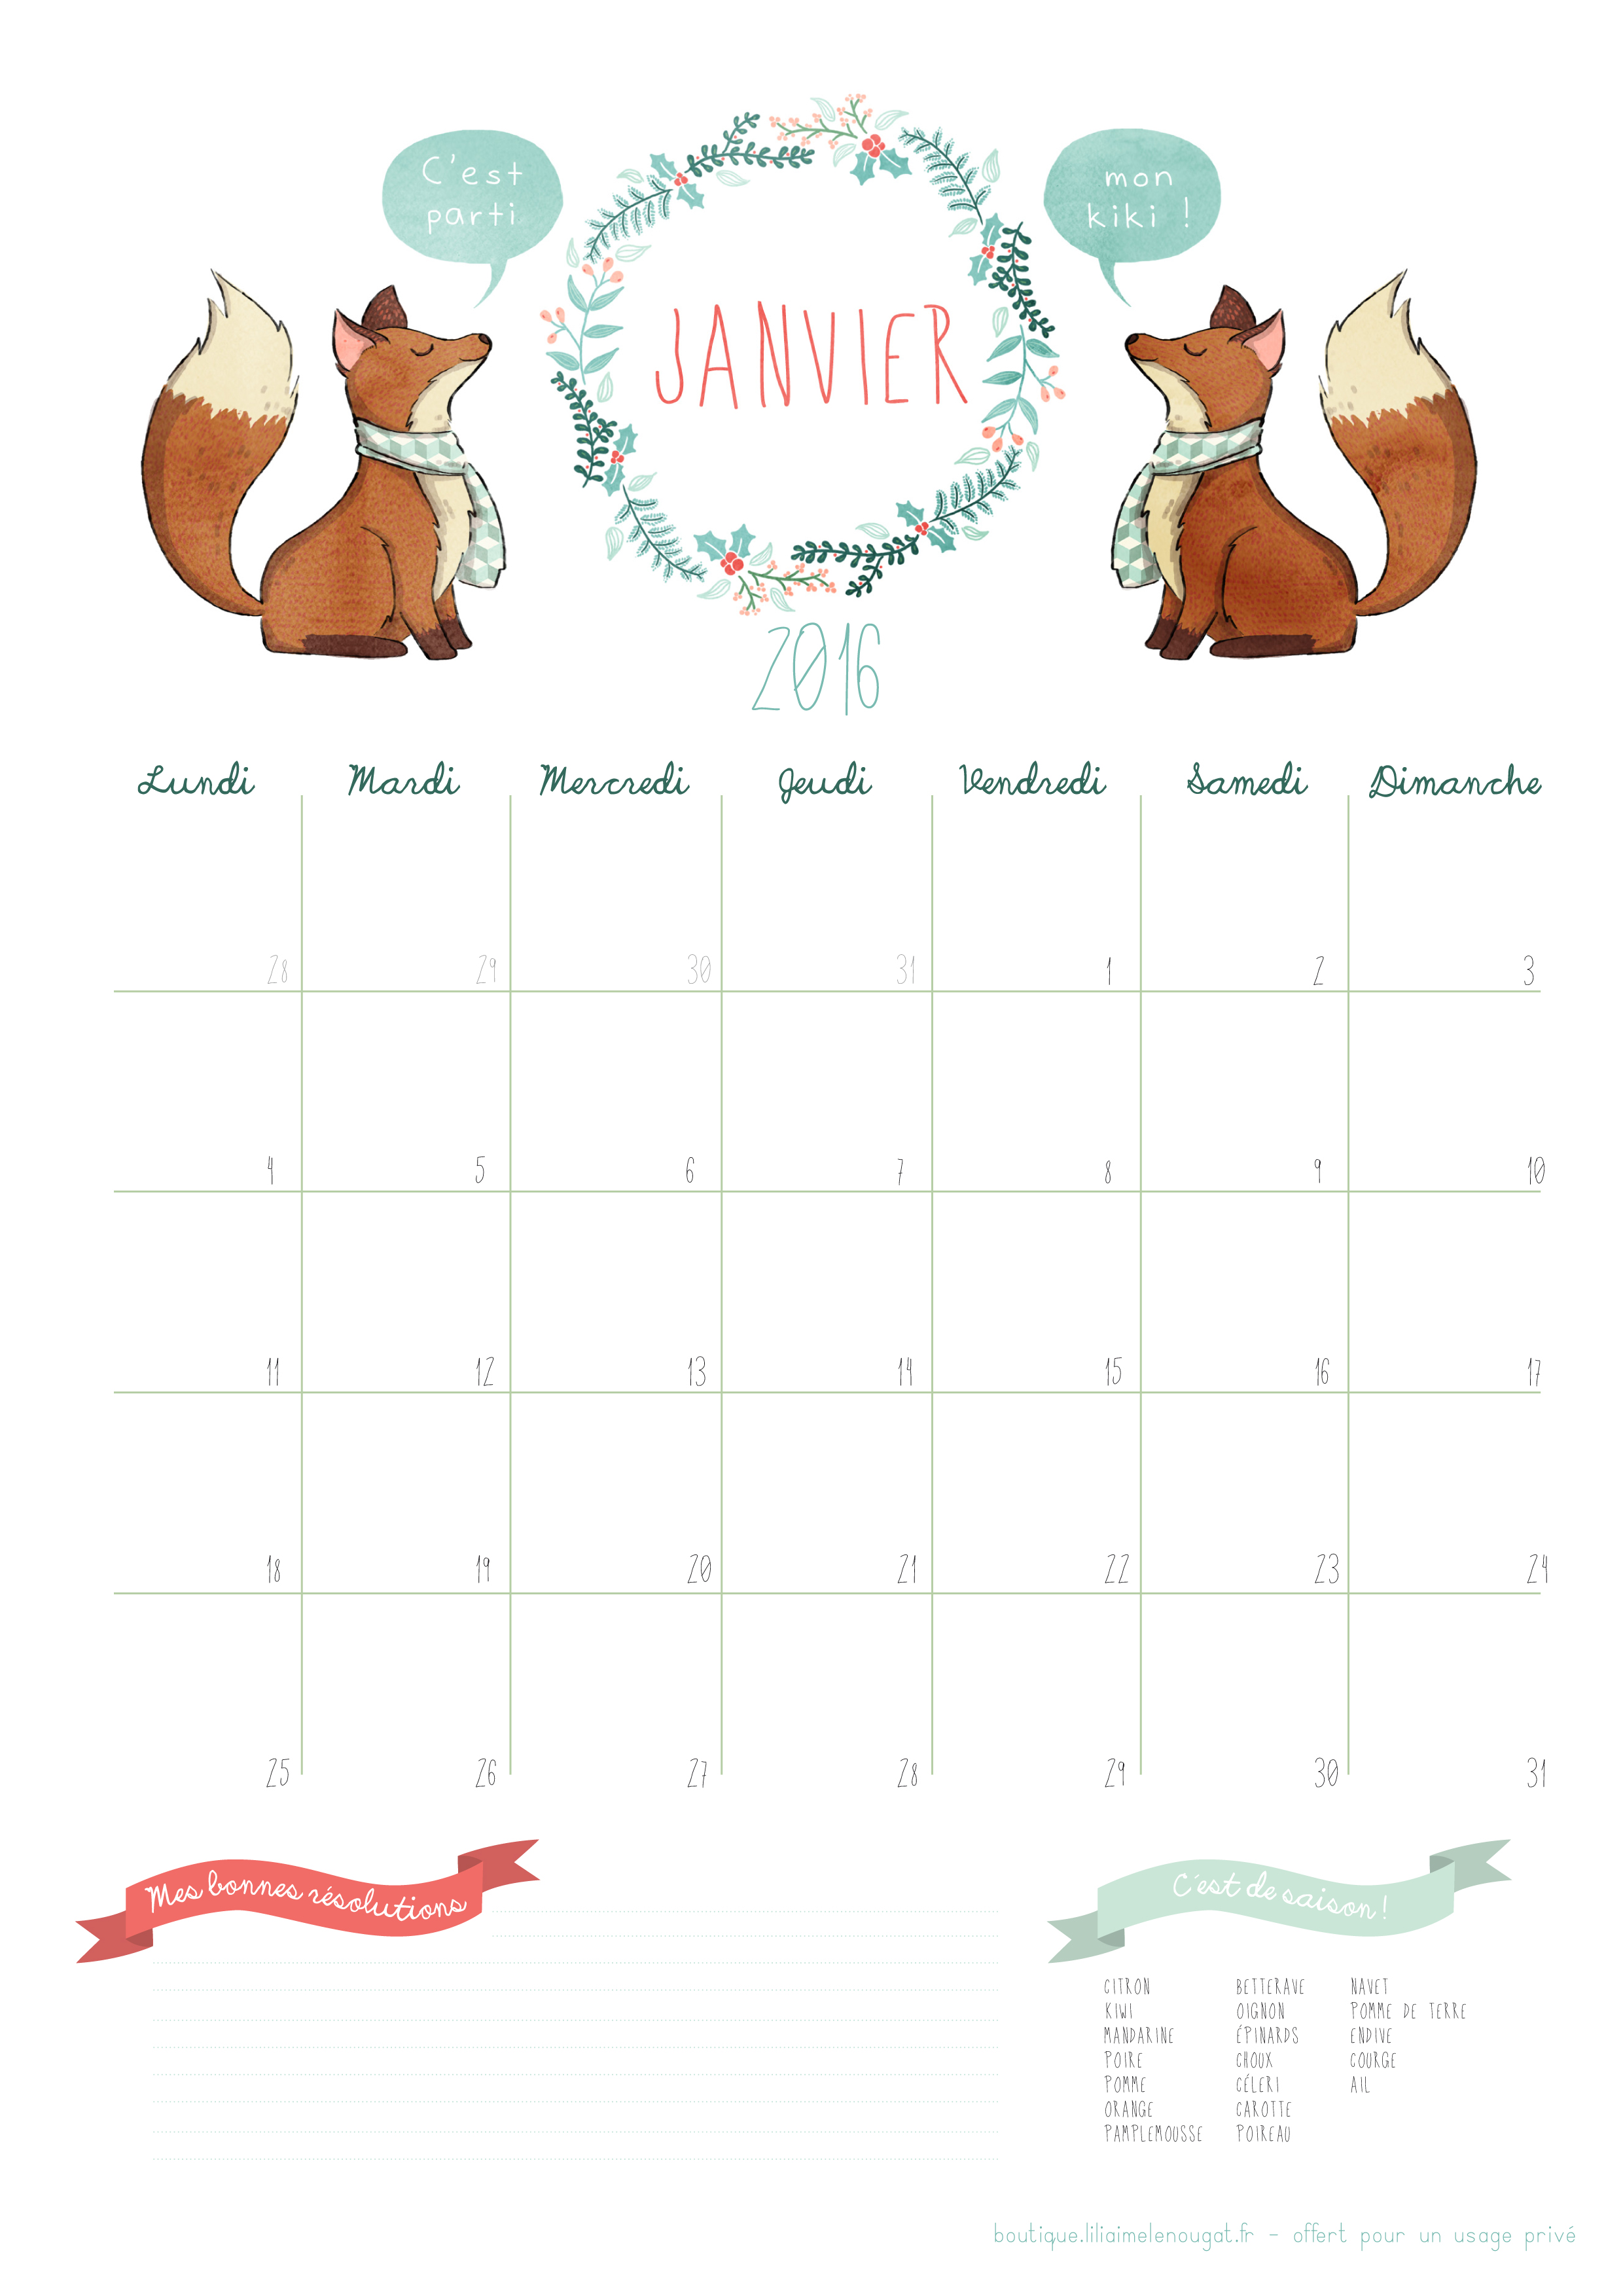 Calendrier 2016 - janvier - free printable - Liliaimelenougat - blog ...